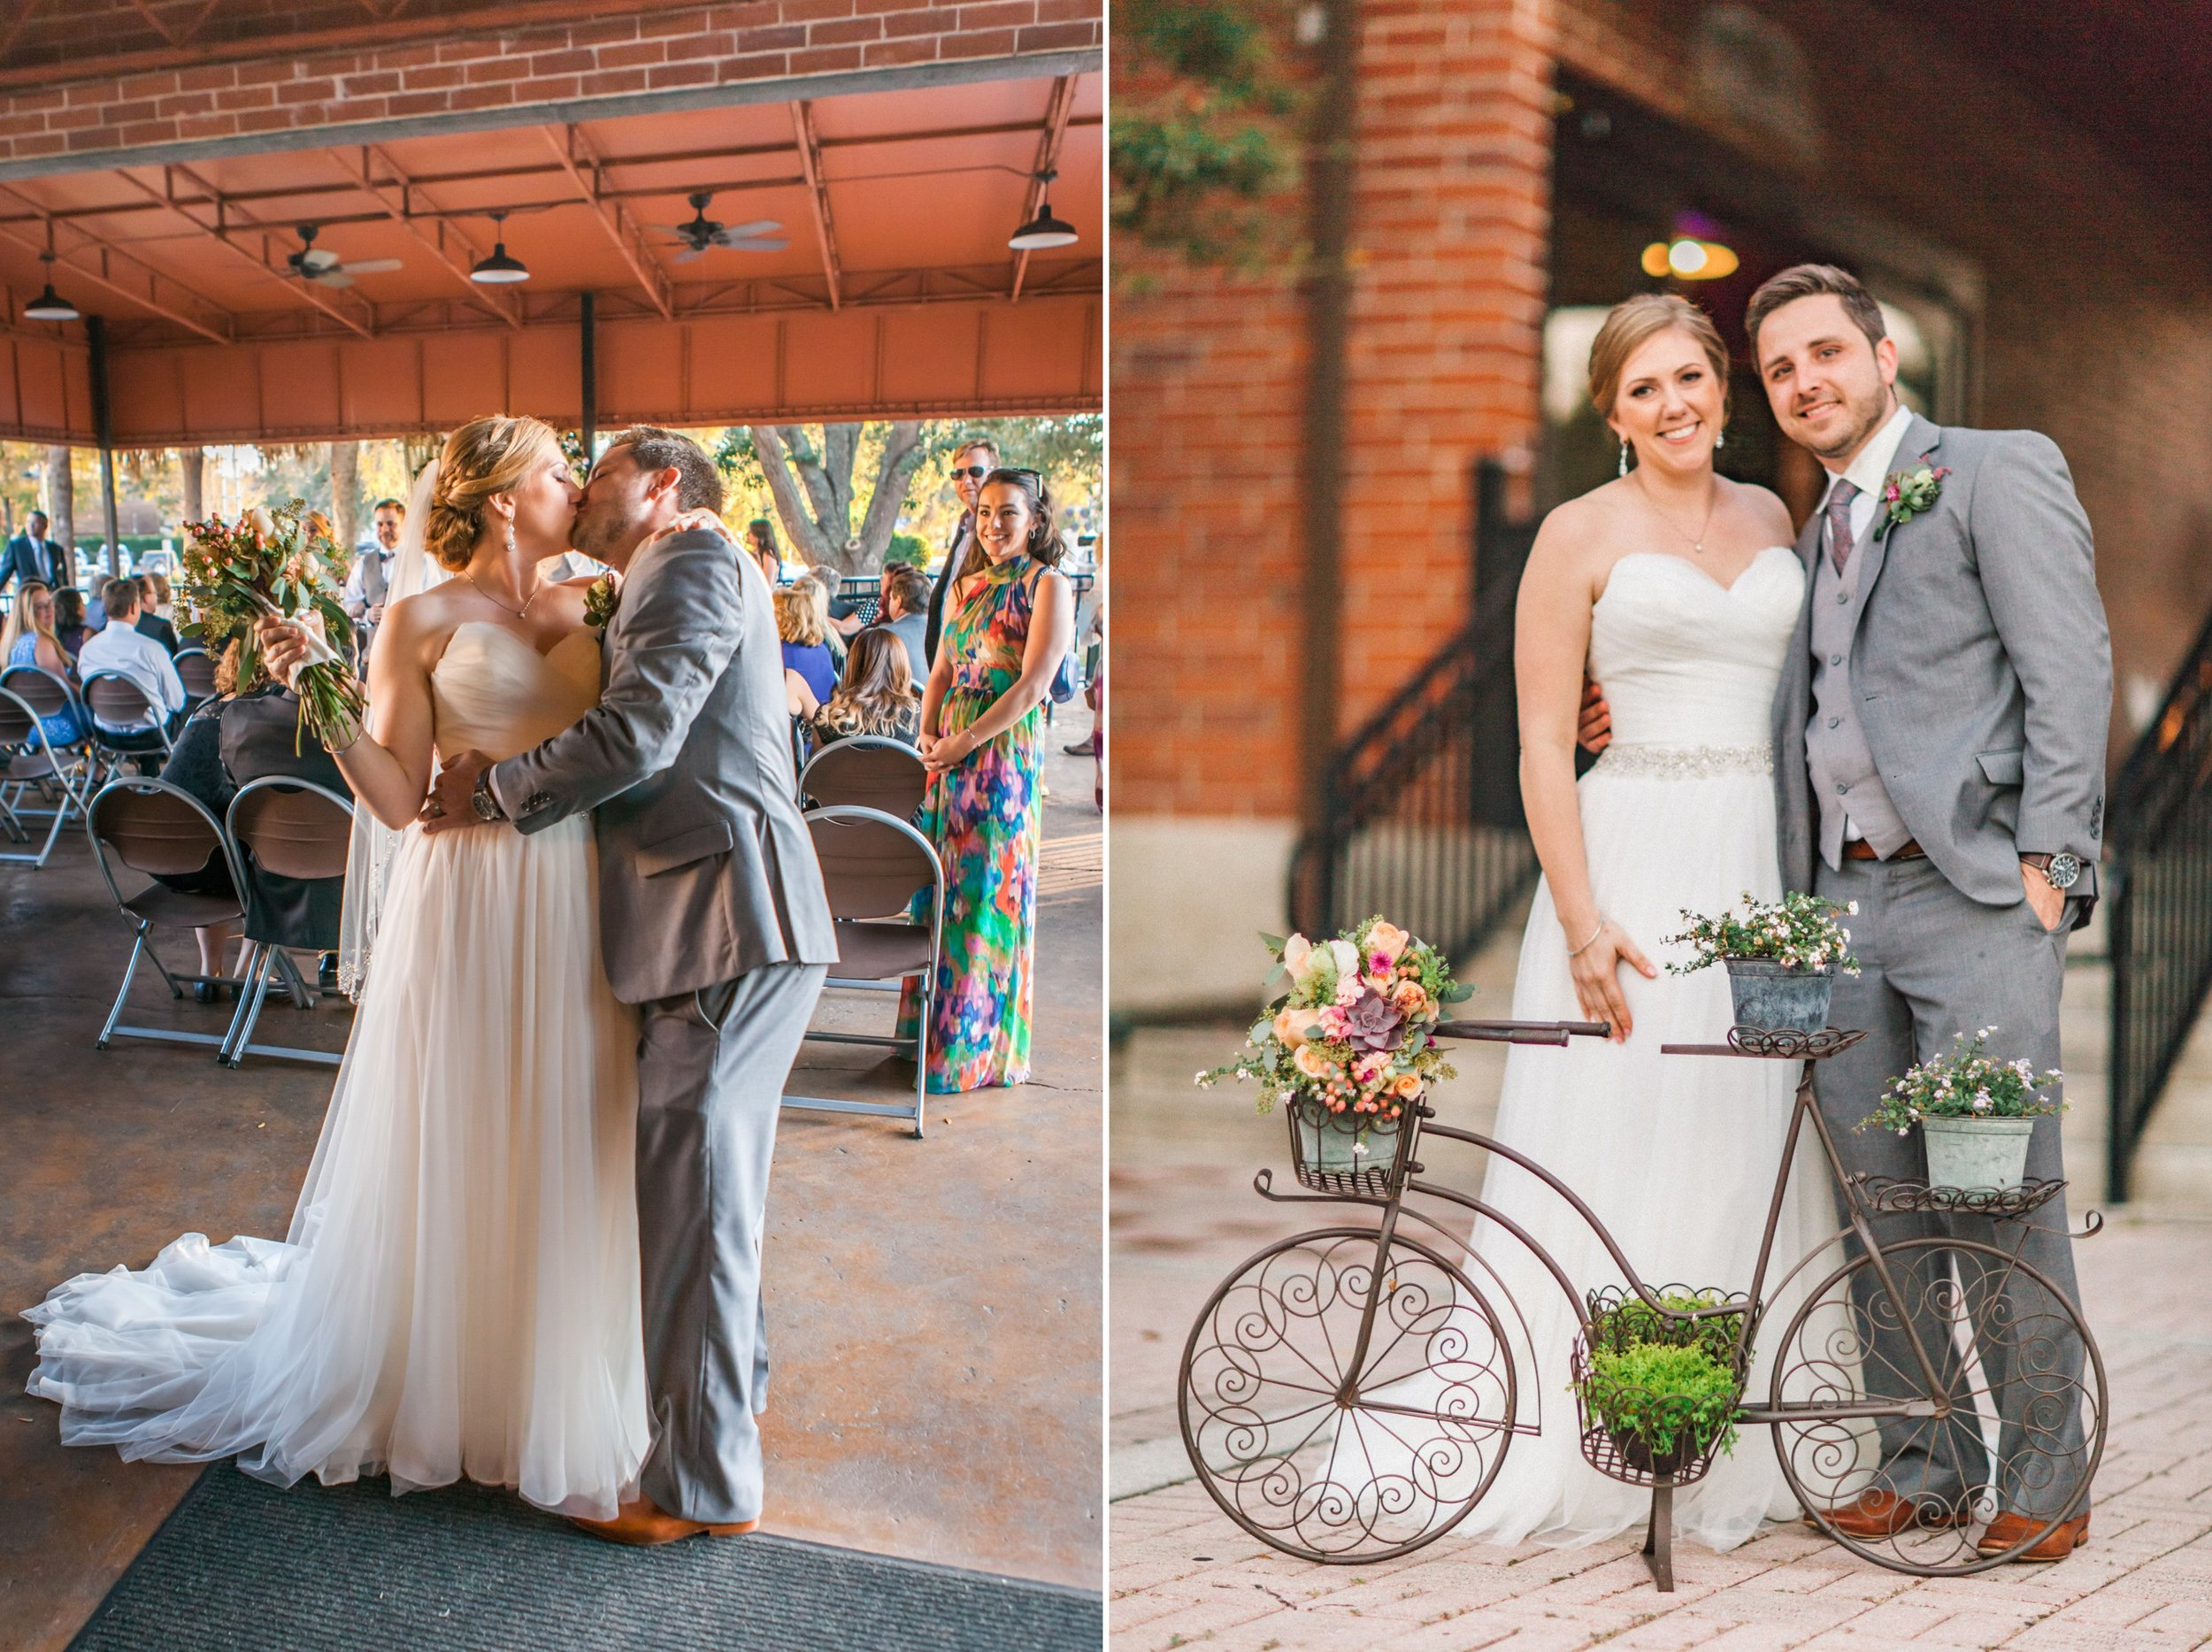 Rustic Chic wedding ceremony bicycle theme at the Winter Park Farmer's Market